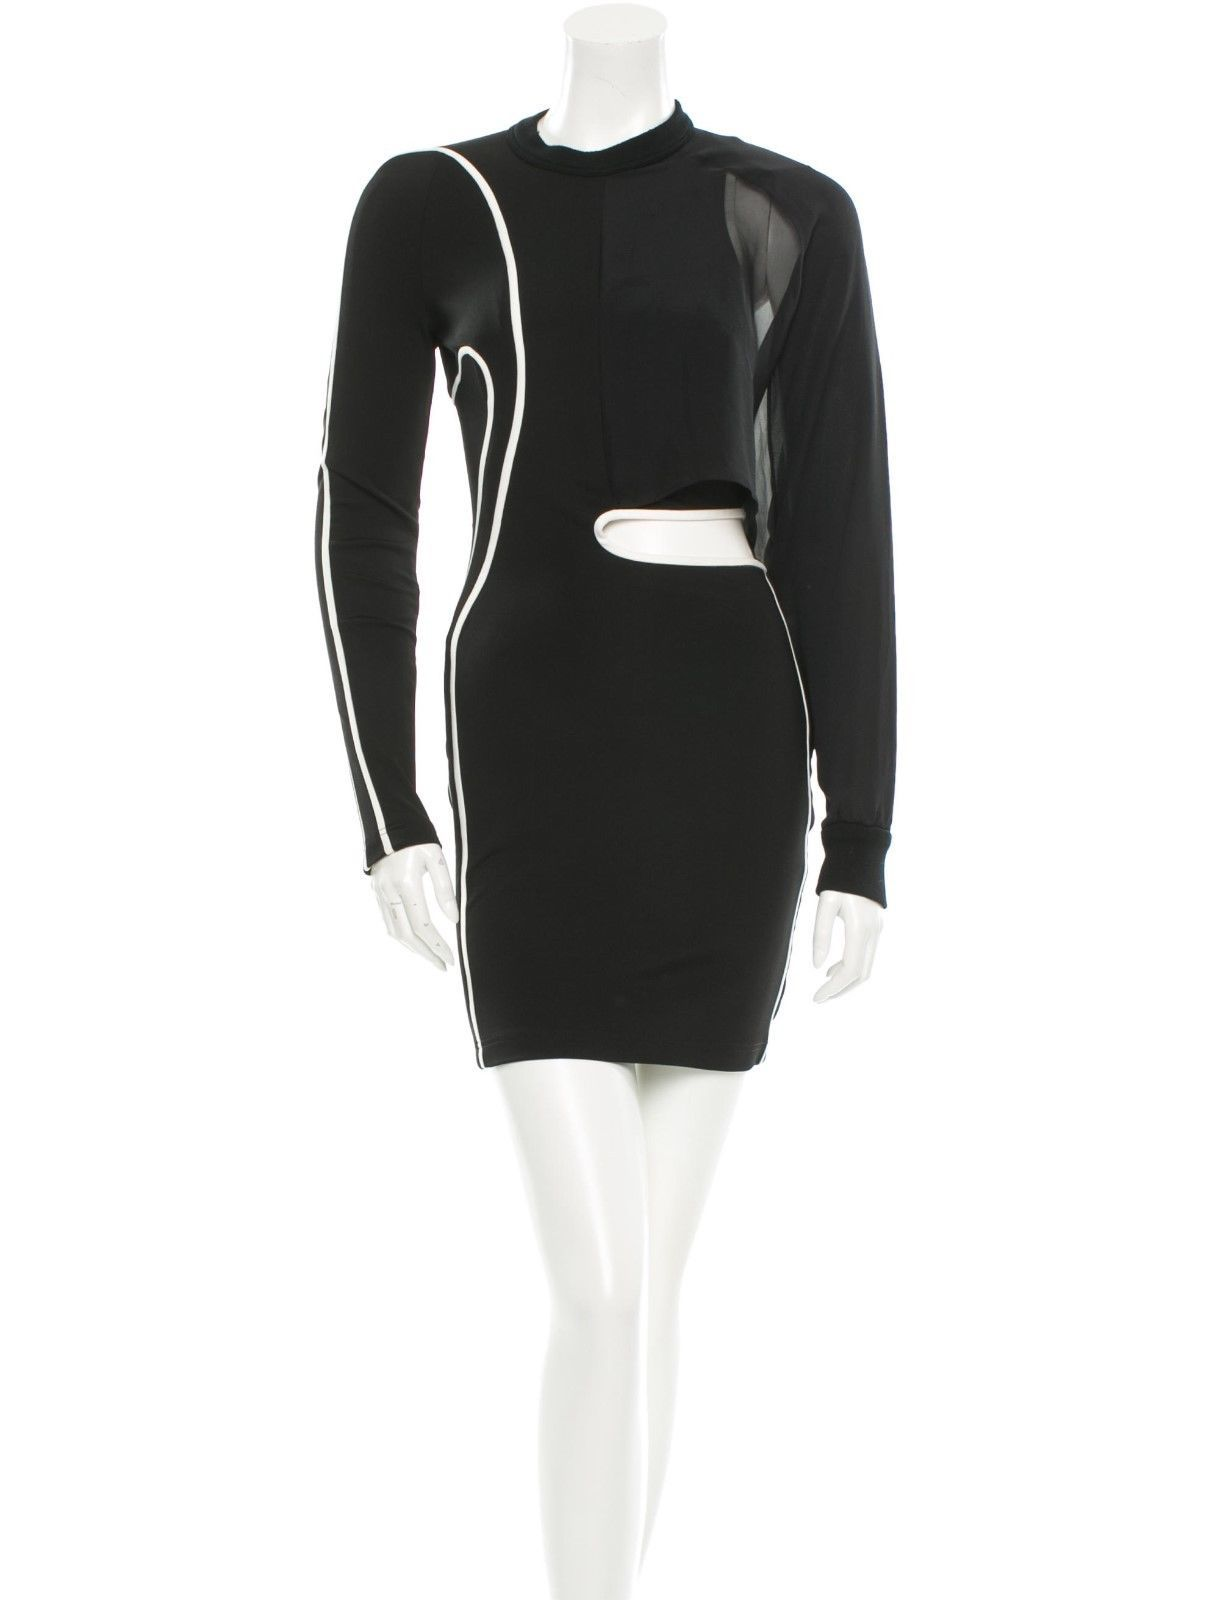 CRAZY COOL, NWT $1,782 SEXY SOLD OUT BLACK & WHITE BODYCON ALEXANDER WANG DRESS